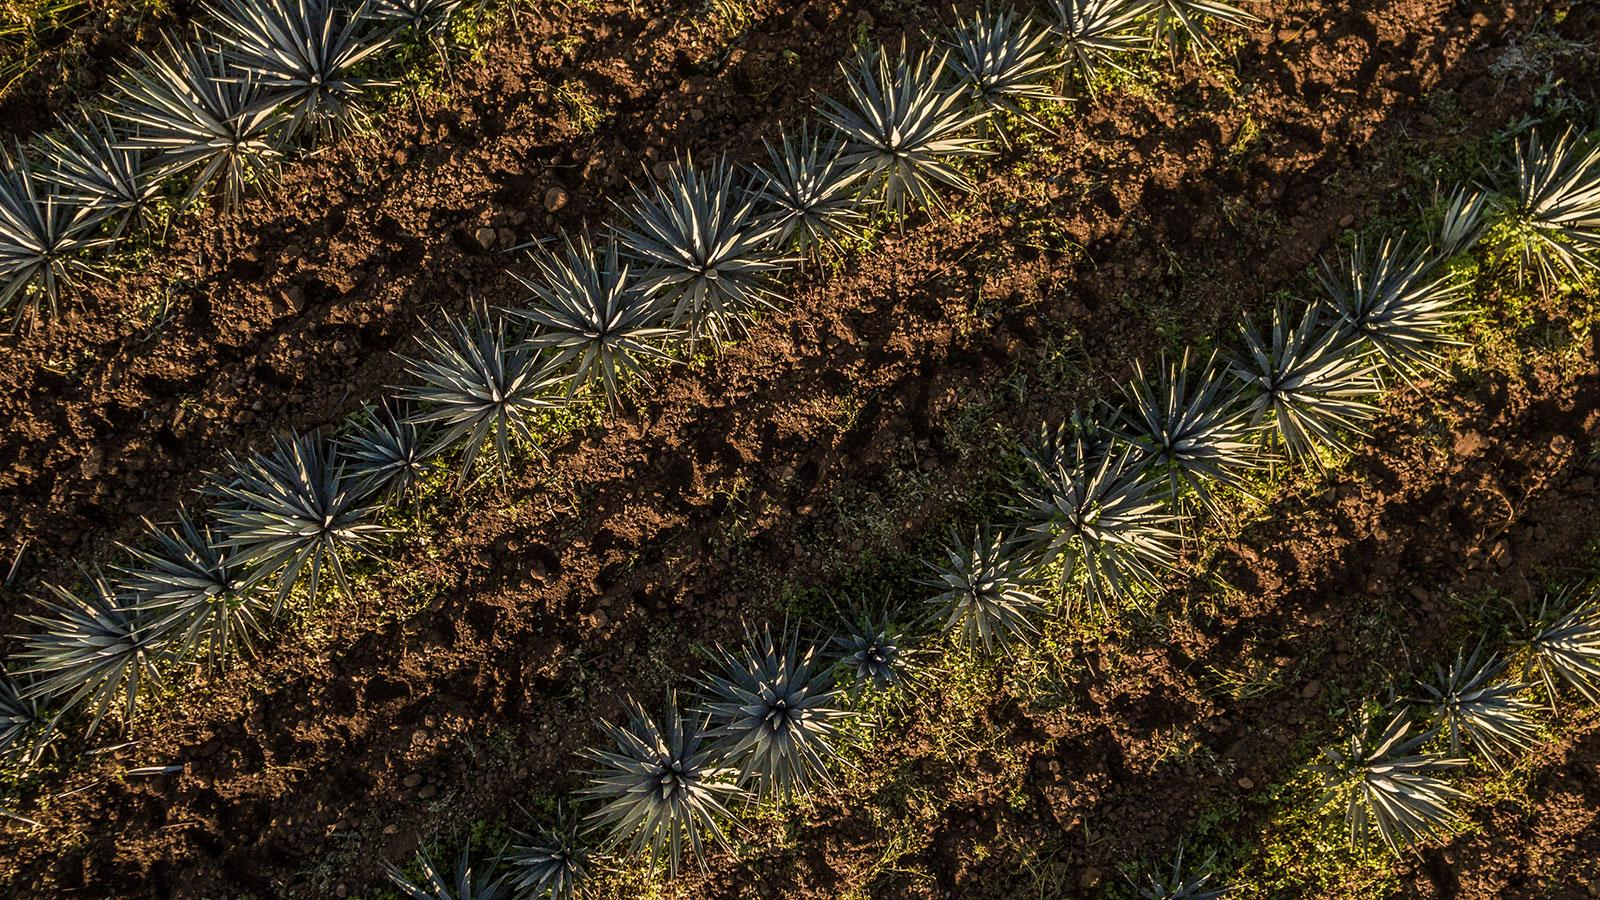 Rows of agave